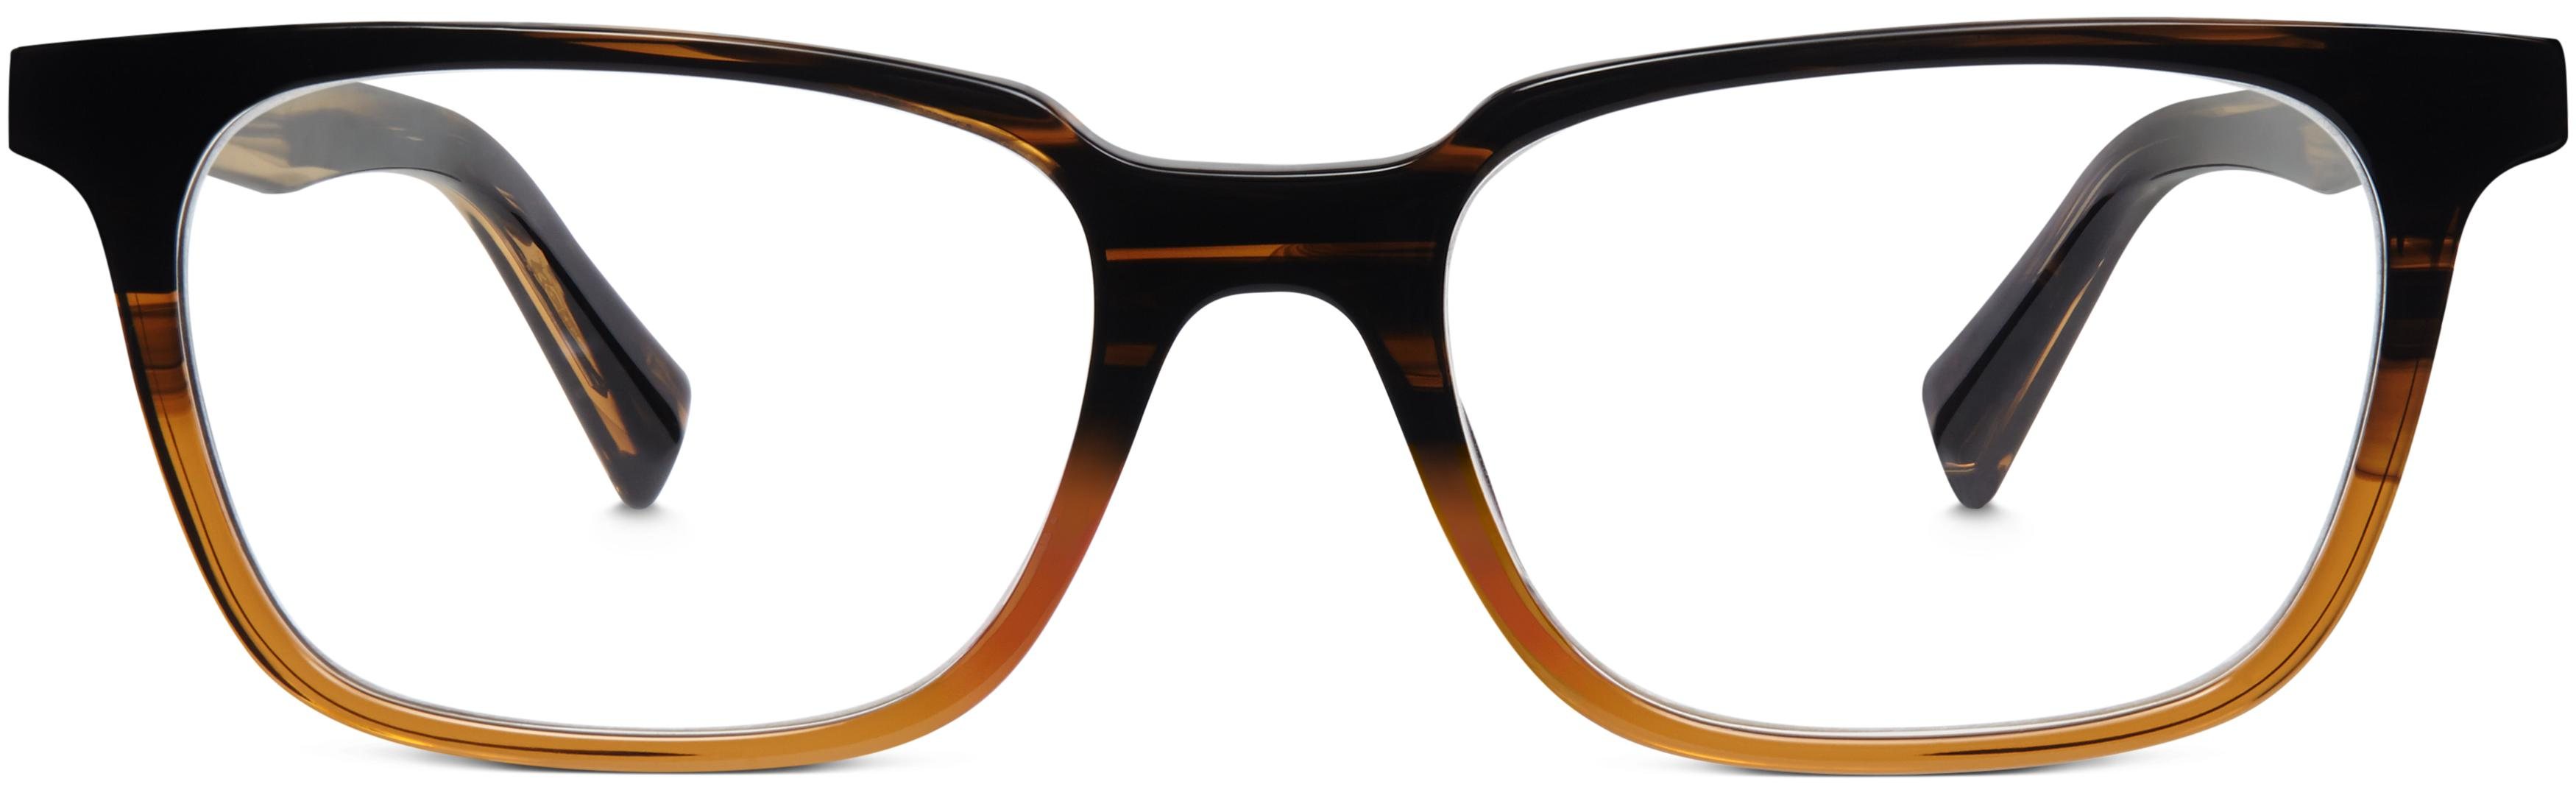 2f8b12c63bb Men s Eyeglasses